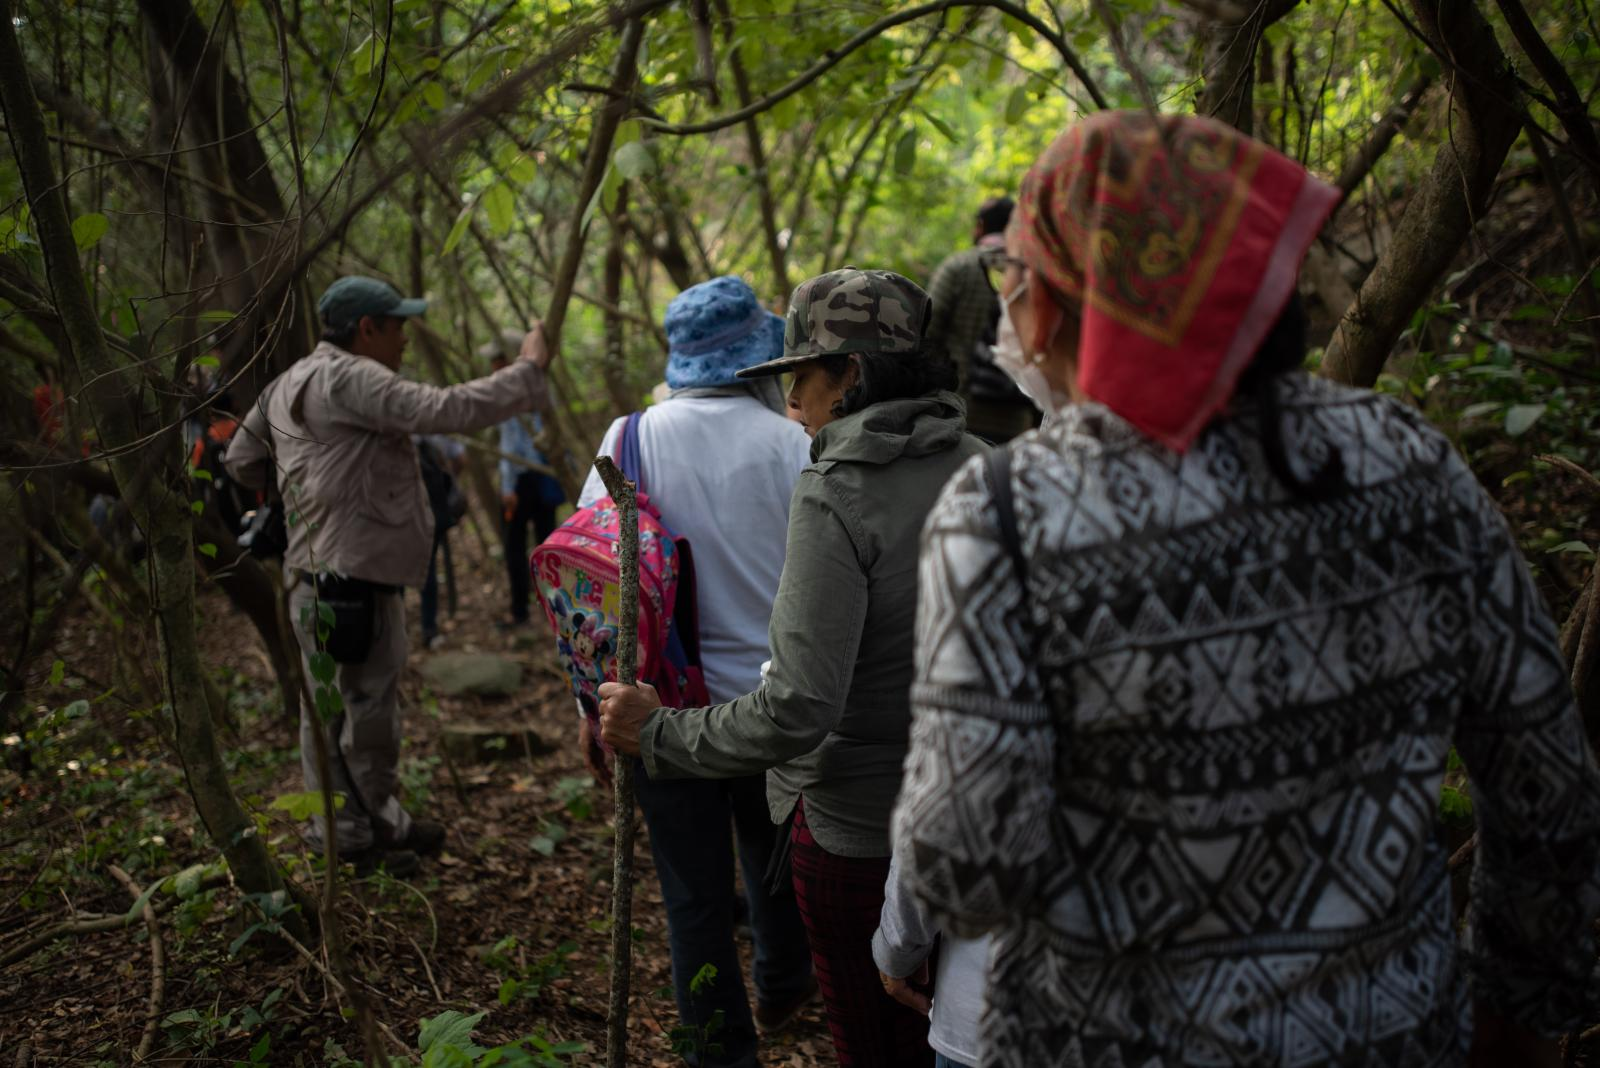 A group of seekers of missing persons walks through field that is investigated by police authorities and family groups participating in the fifth National Missing Persons Search Brigade in Tihuatlan, Veracruz, Mexico, on February 20, 2020. Victoria Razo for NPR